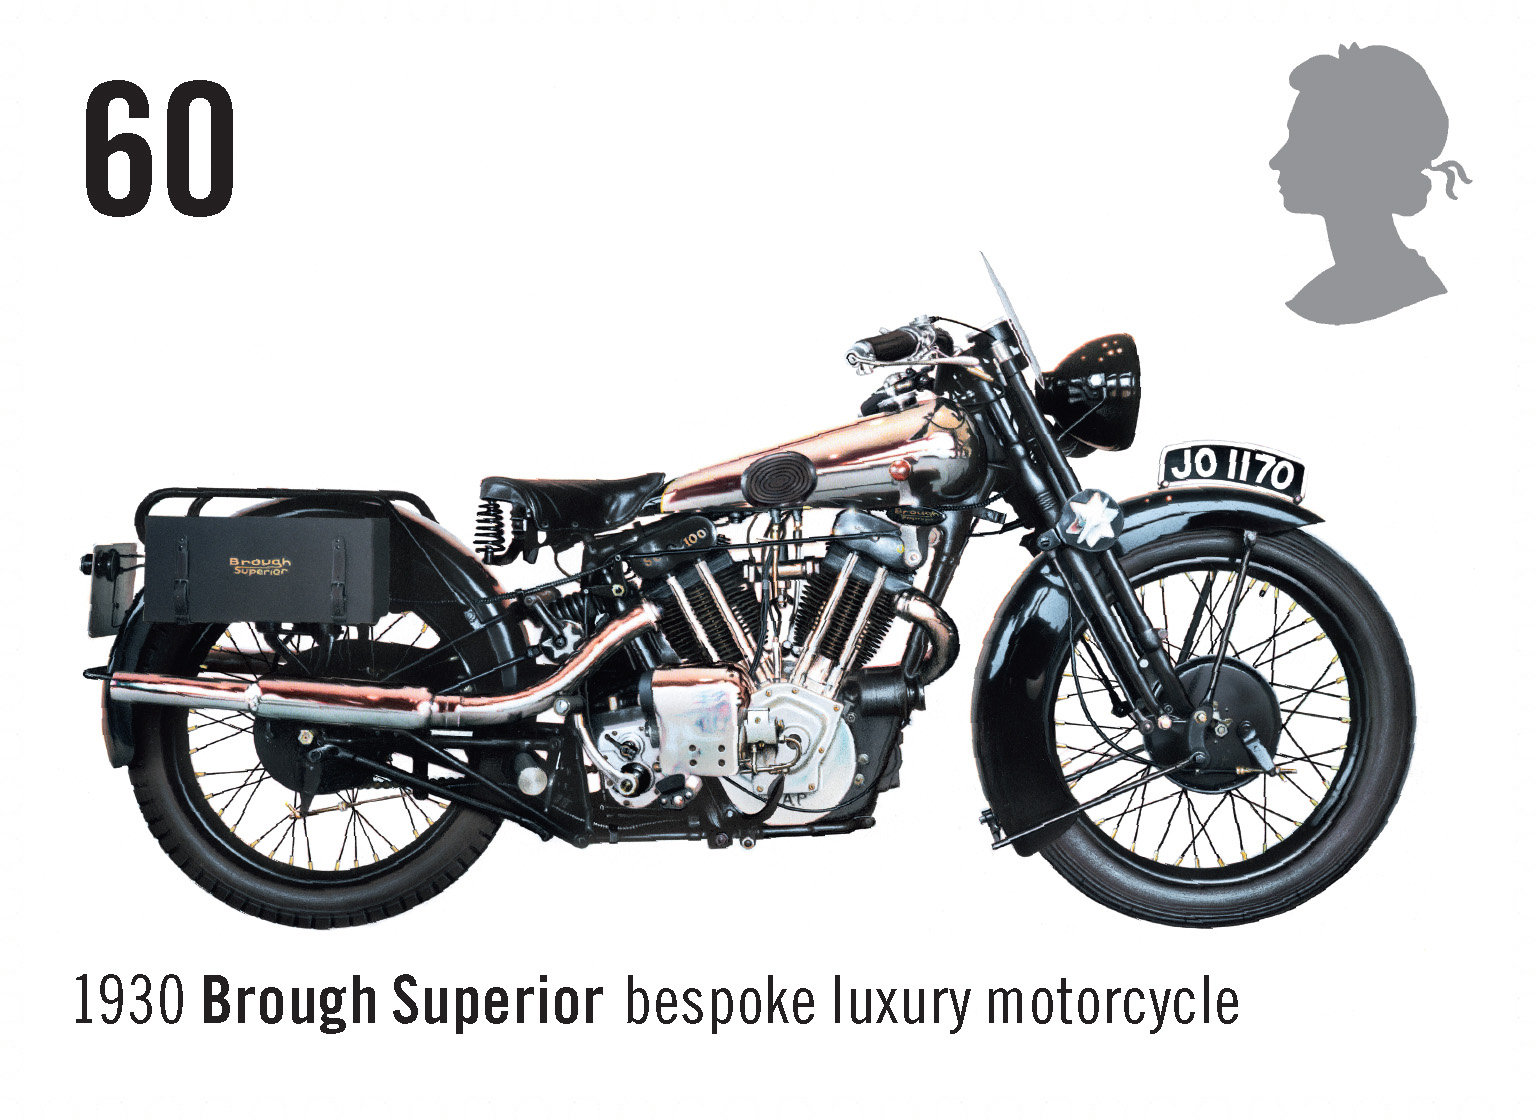 Brough Superior Bespoke Luxury Motorcycle (1930) #SpecialStamp from 2005 'Motorcycles'